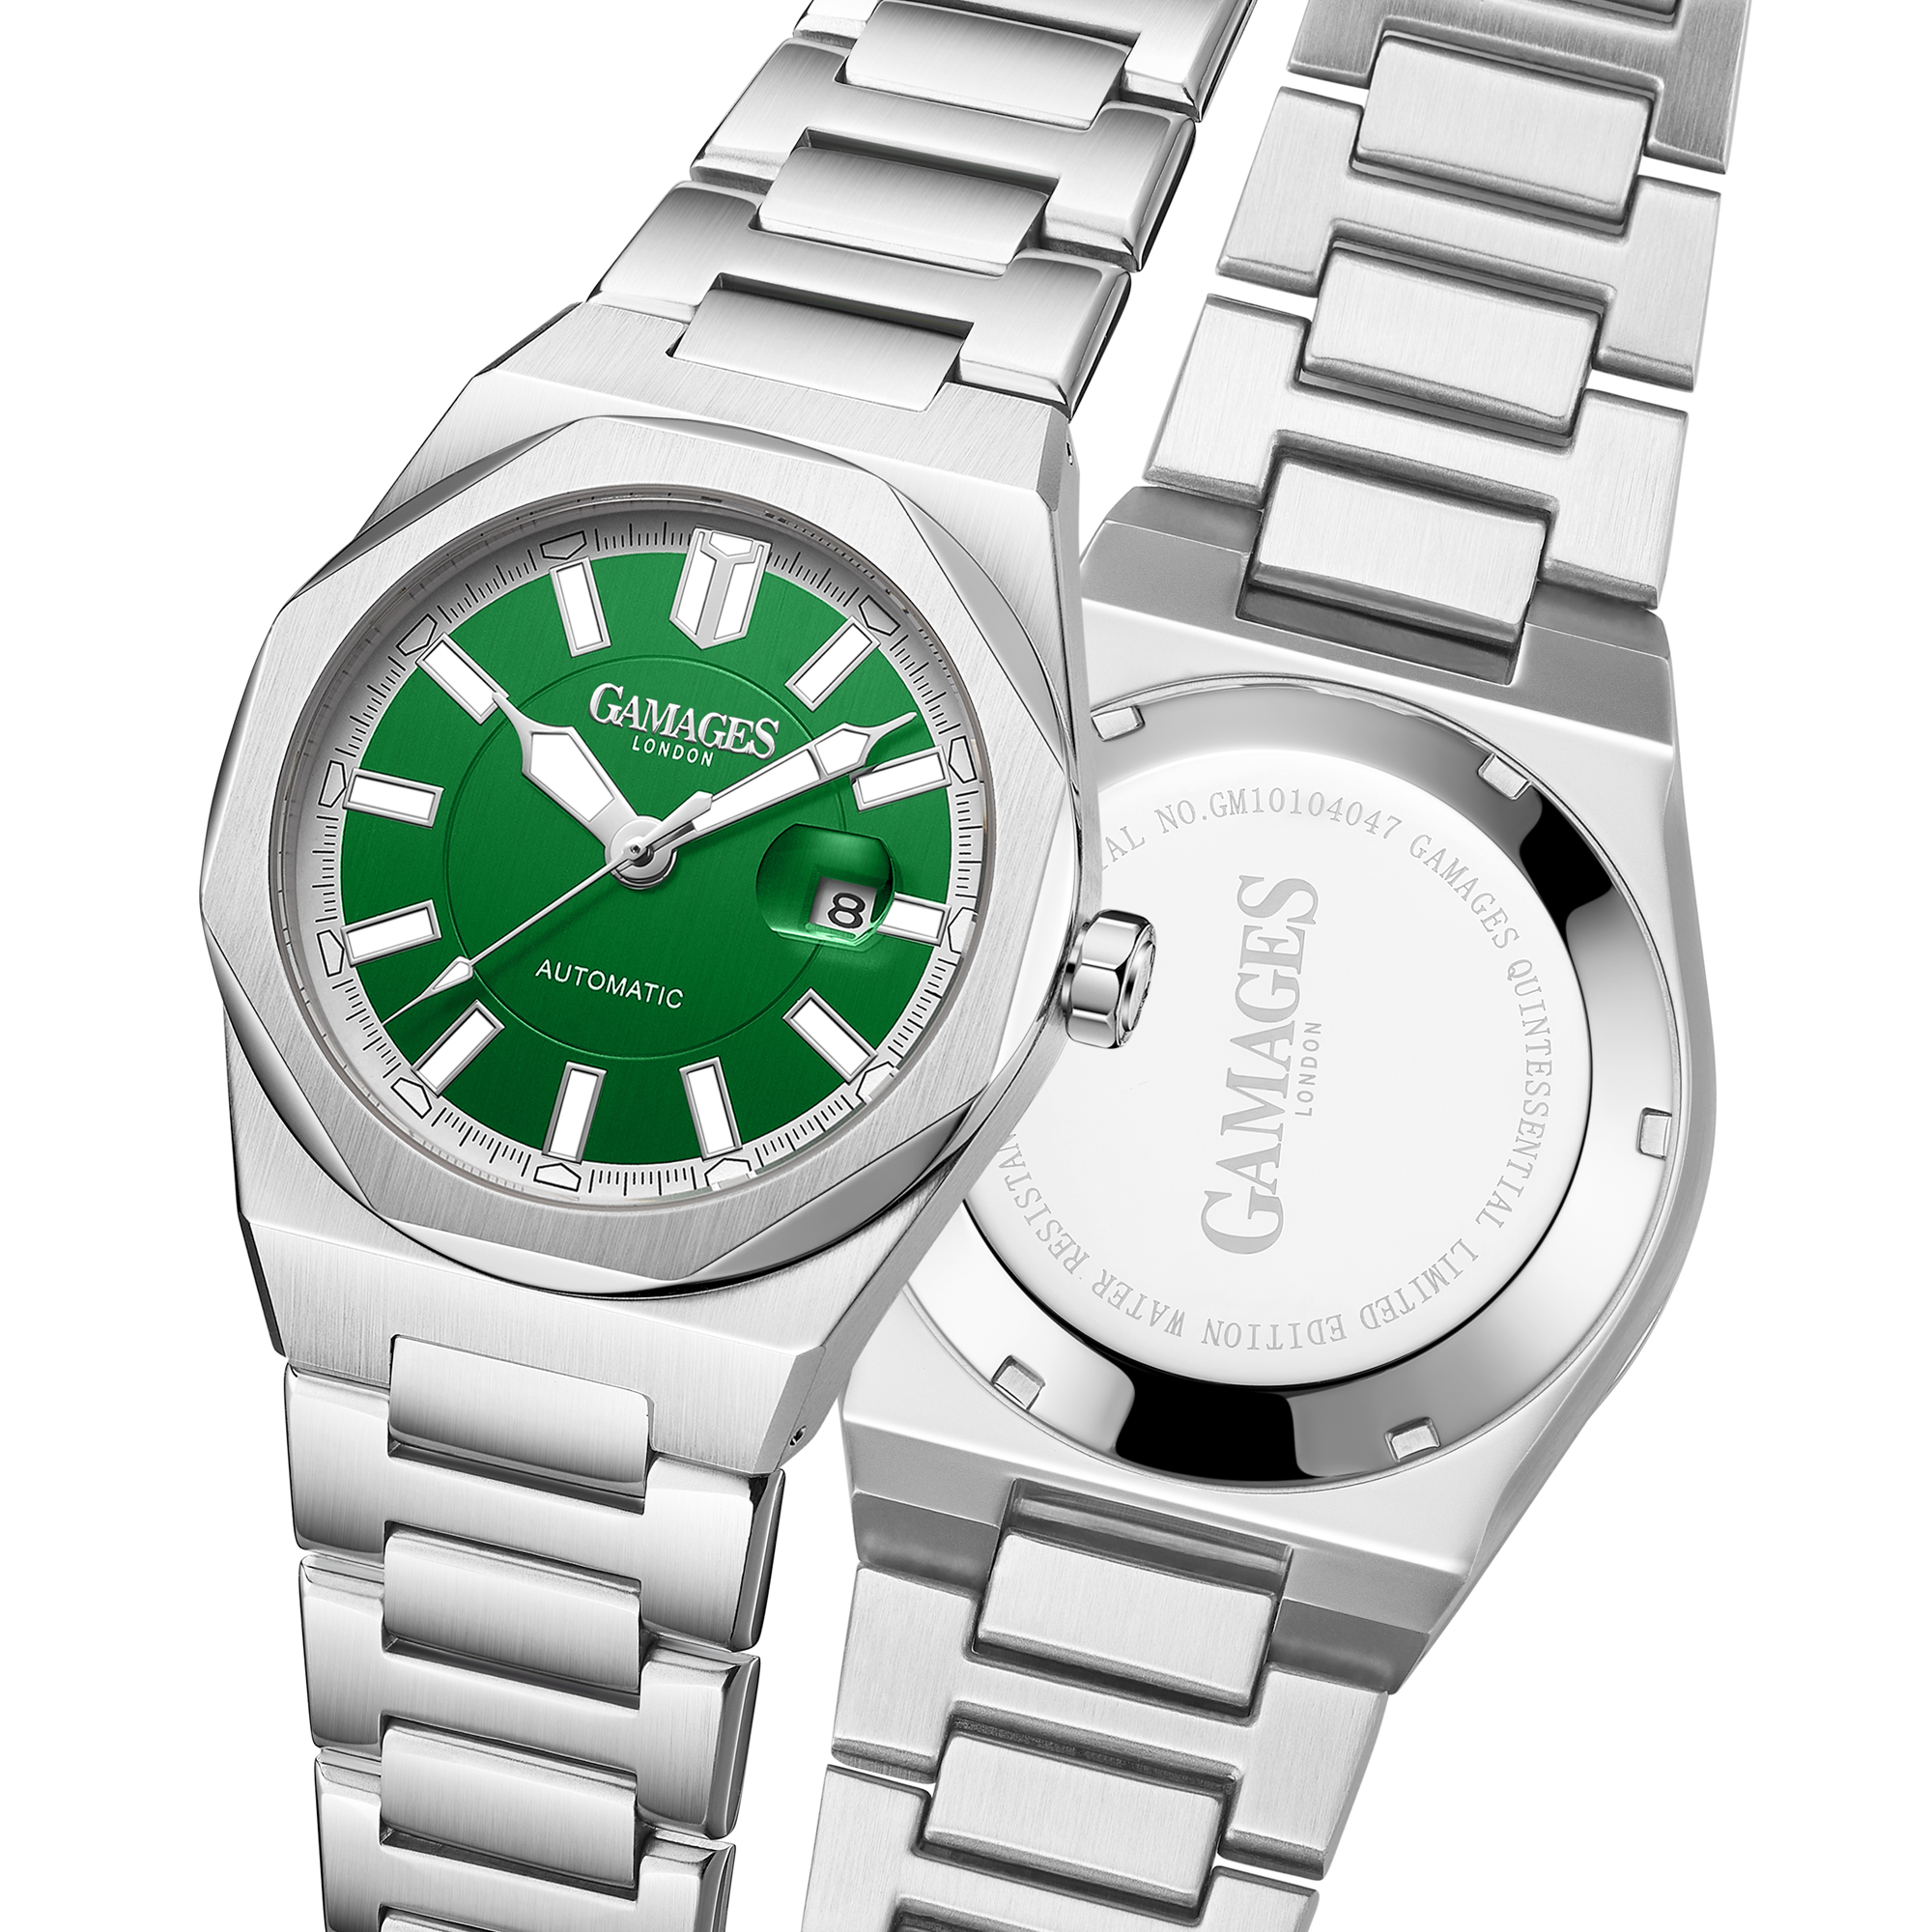 Ltd Edition Hand Assembled Gamages Quintessential Automatic Green – 5 Year Warranty & Free Delivery - Image 5 of 5